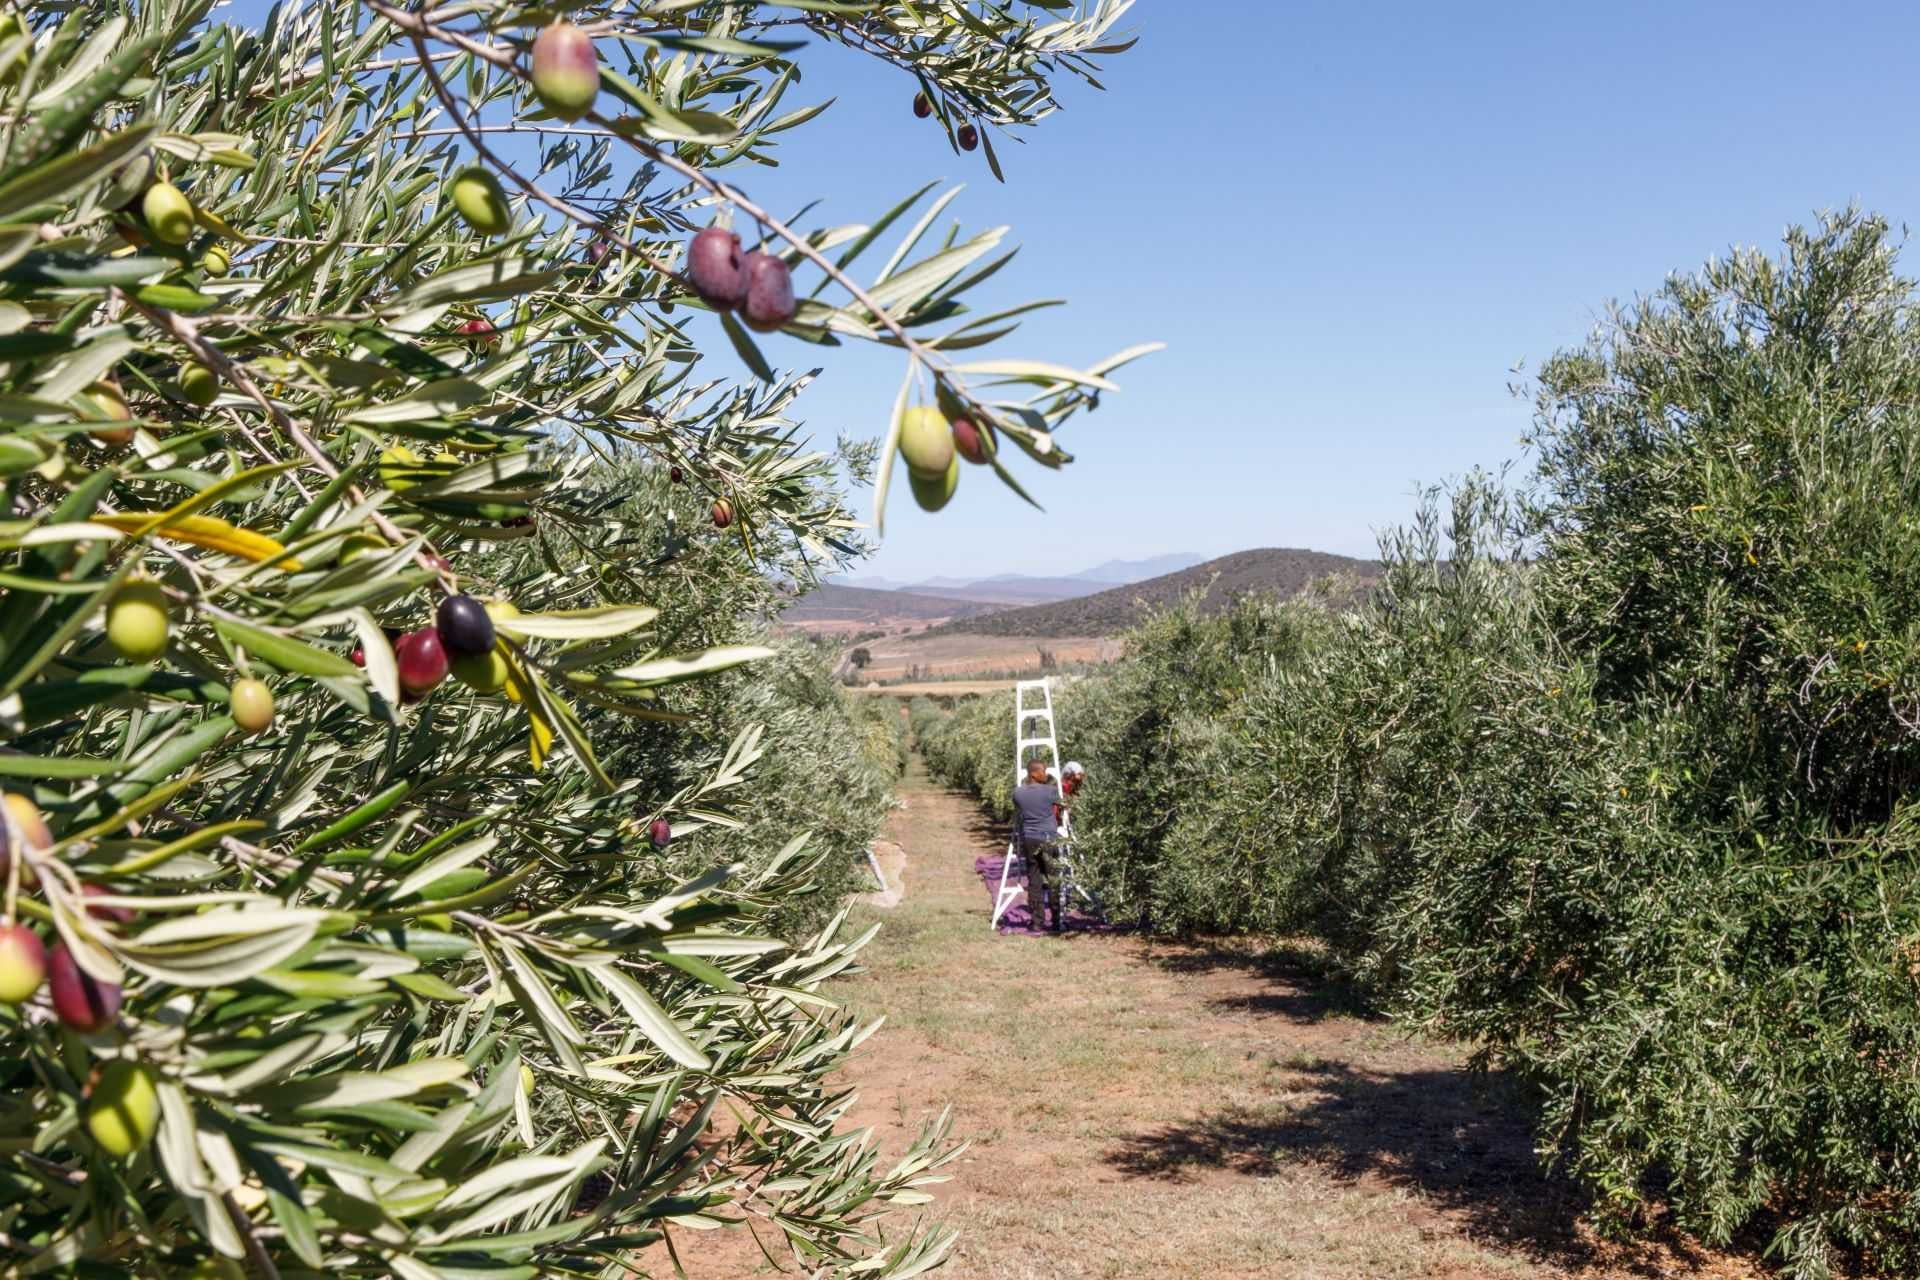 africa-middle-east-competitions-the-best-olive-oils-bountiful-harvest-yields-wins-for-south-african-producers-at-world-competition-olive-oil-times